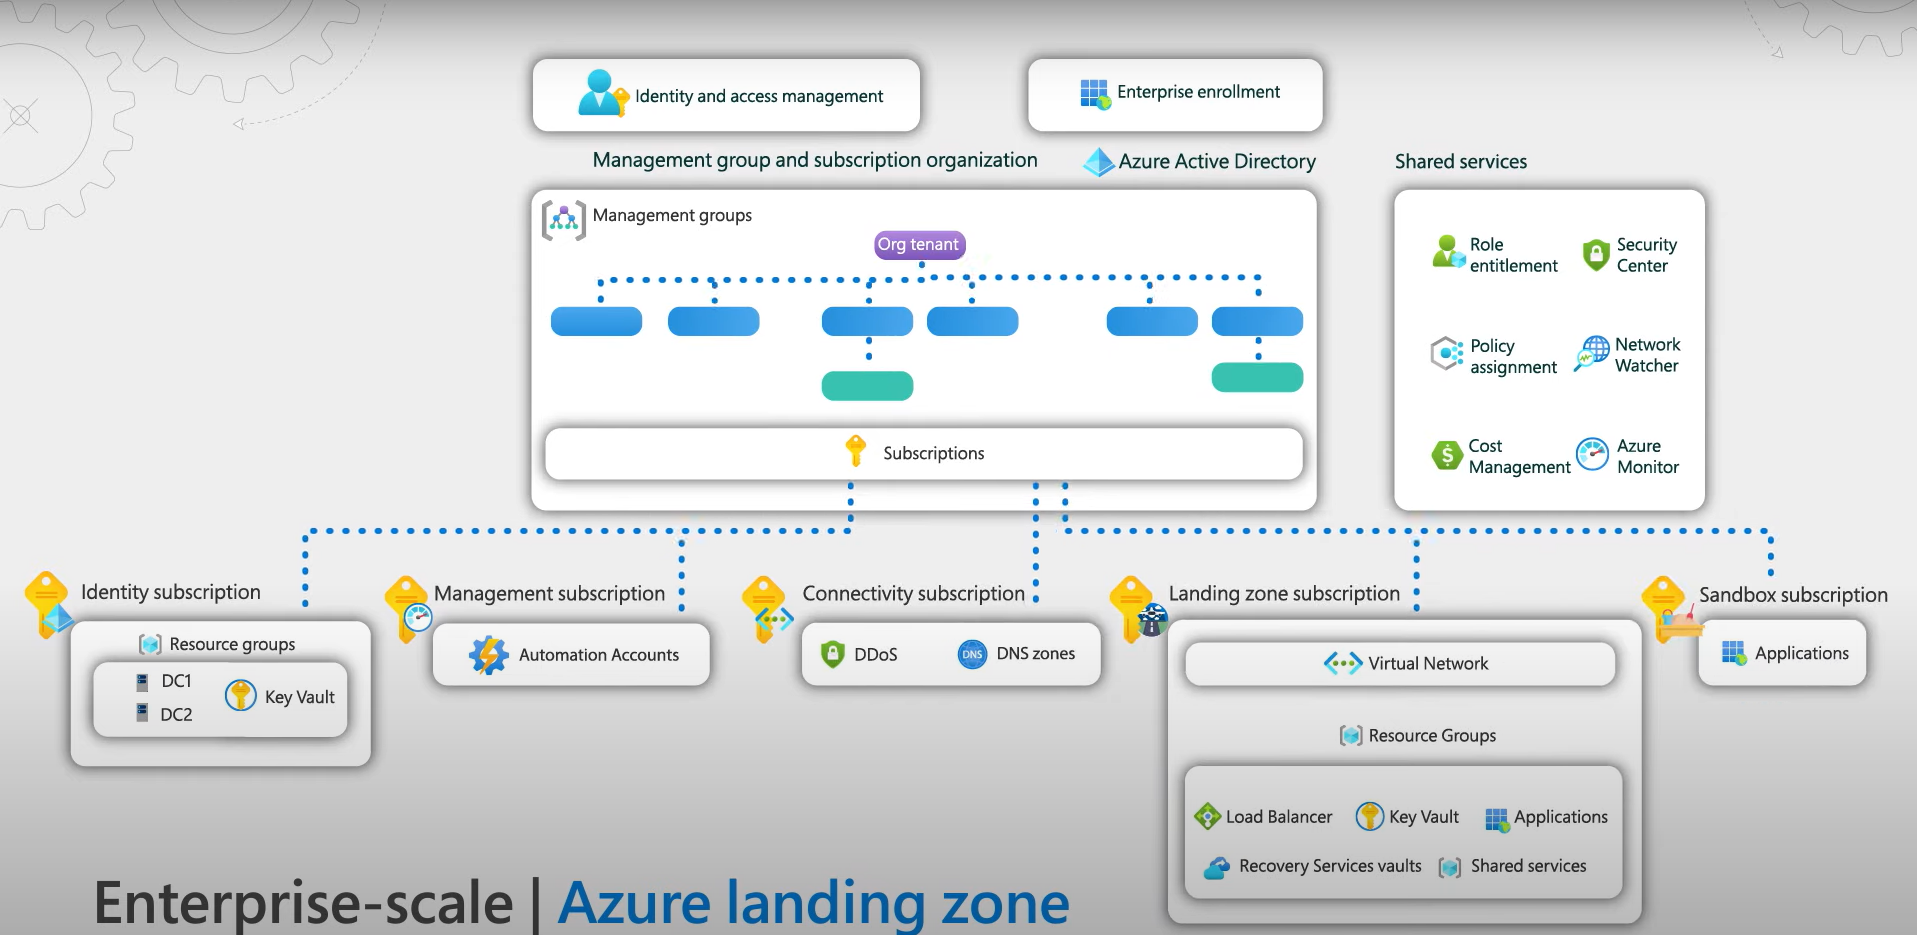 Cloud Migration or Build Apps with an Architectural Foundation | Azure Landing Zones